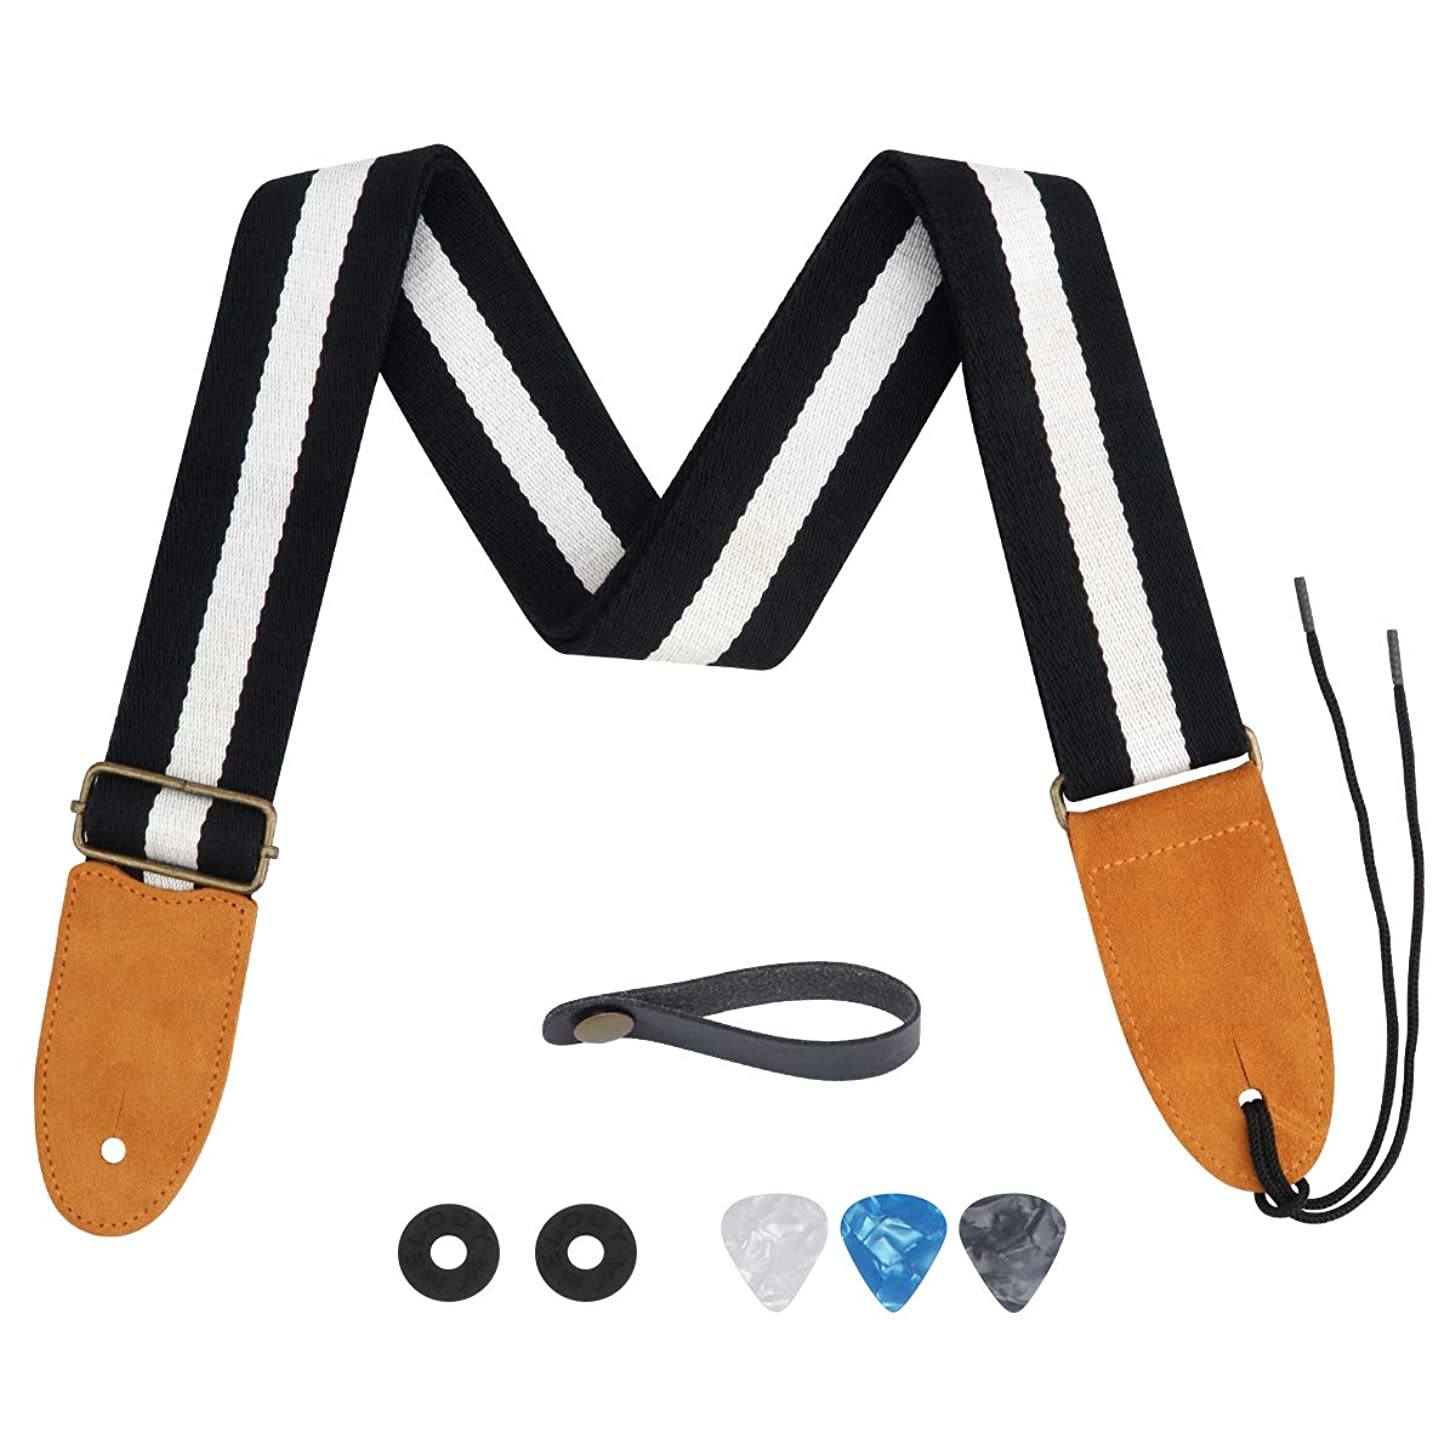 Guitar Strap, 100% Soft Cotton Guitar Straps Top Grade Adjustable Metal Belt Buckle with Microfiber Leather Ends for Bass, Electric & Acoustic Guitar